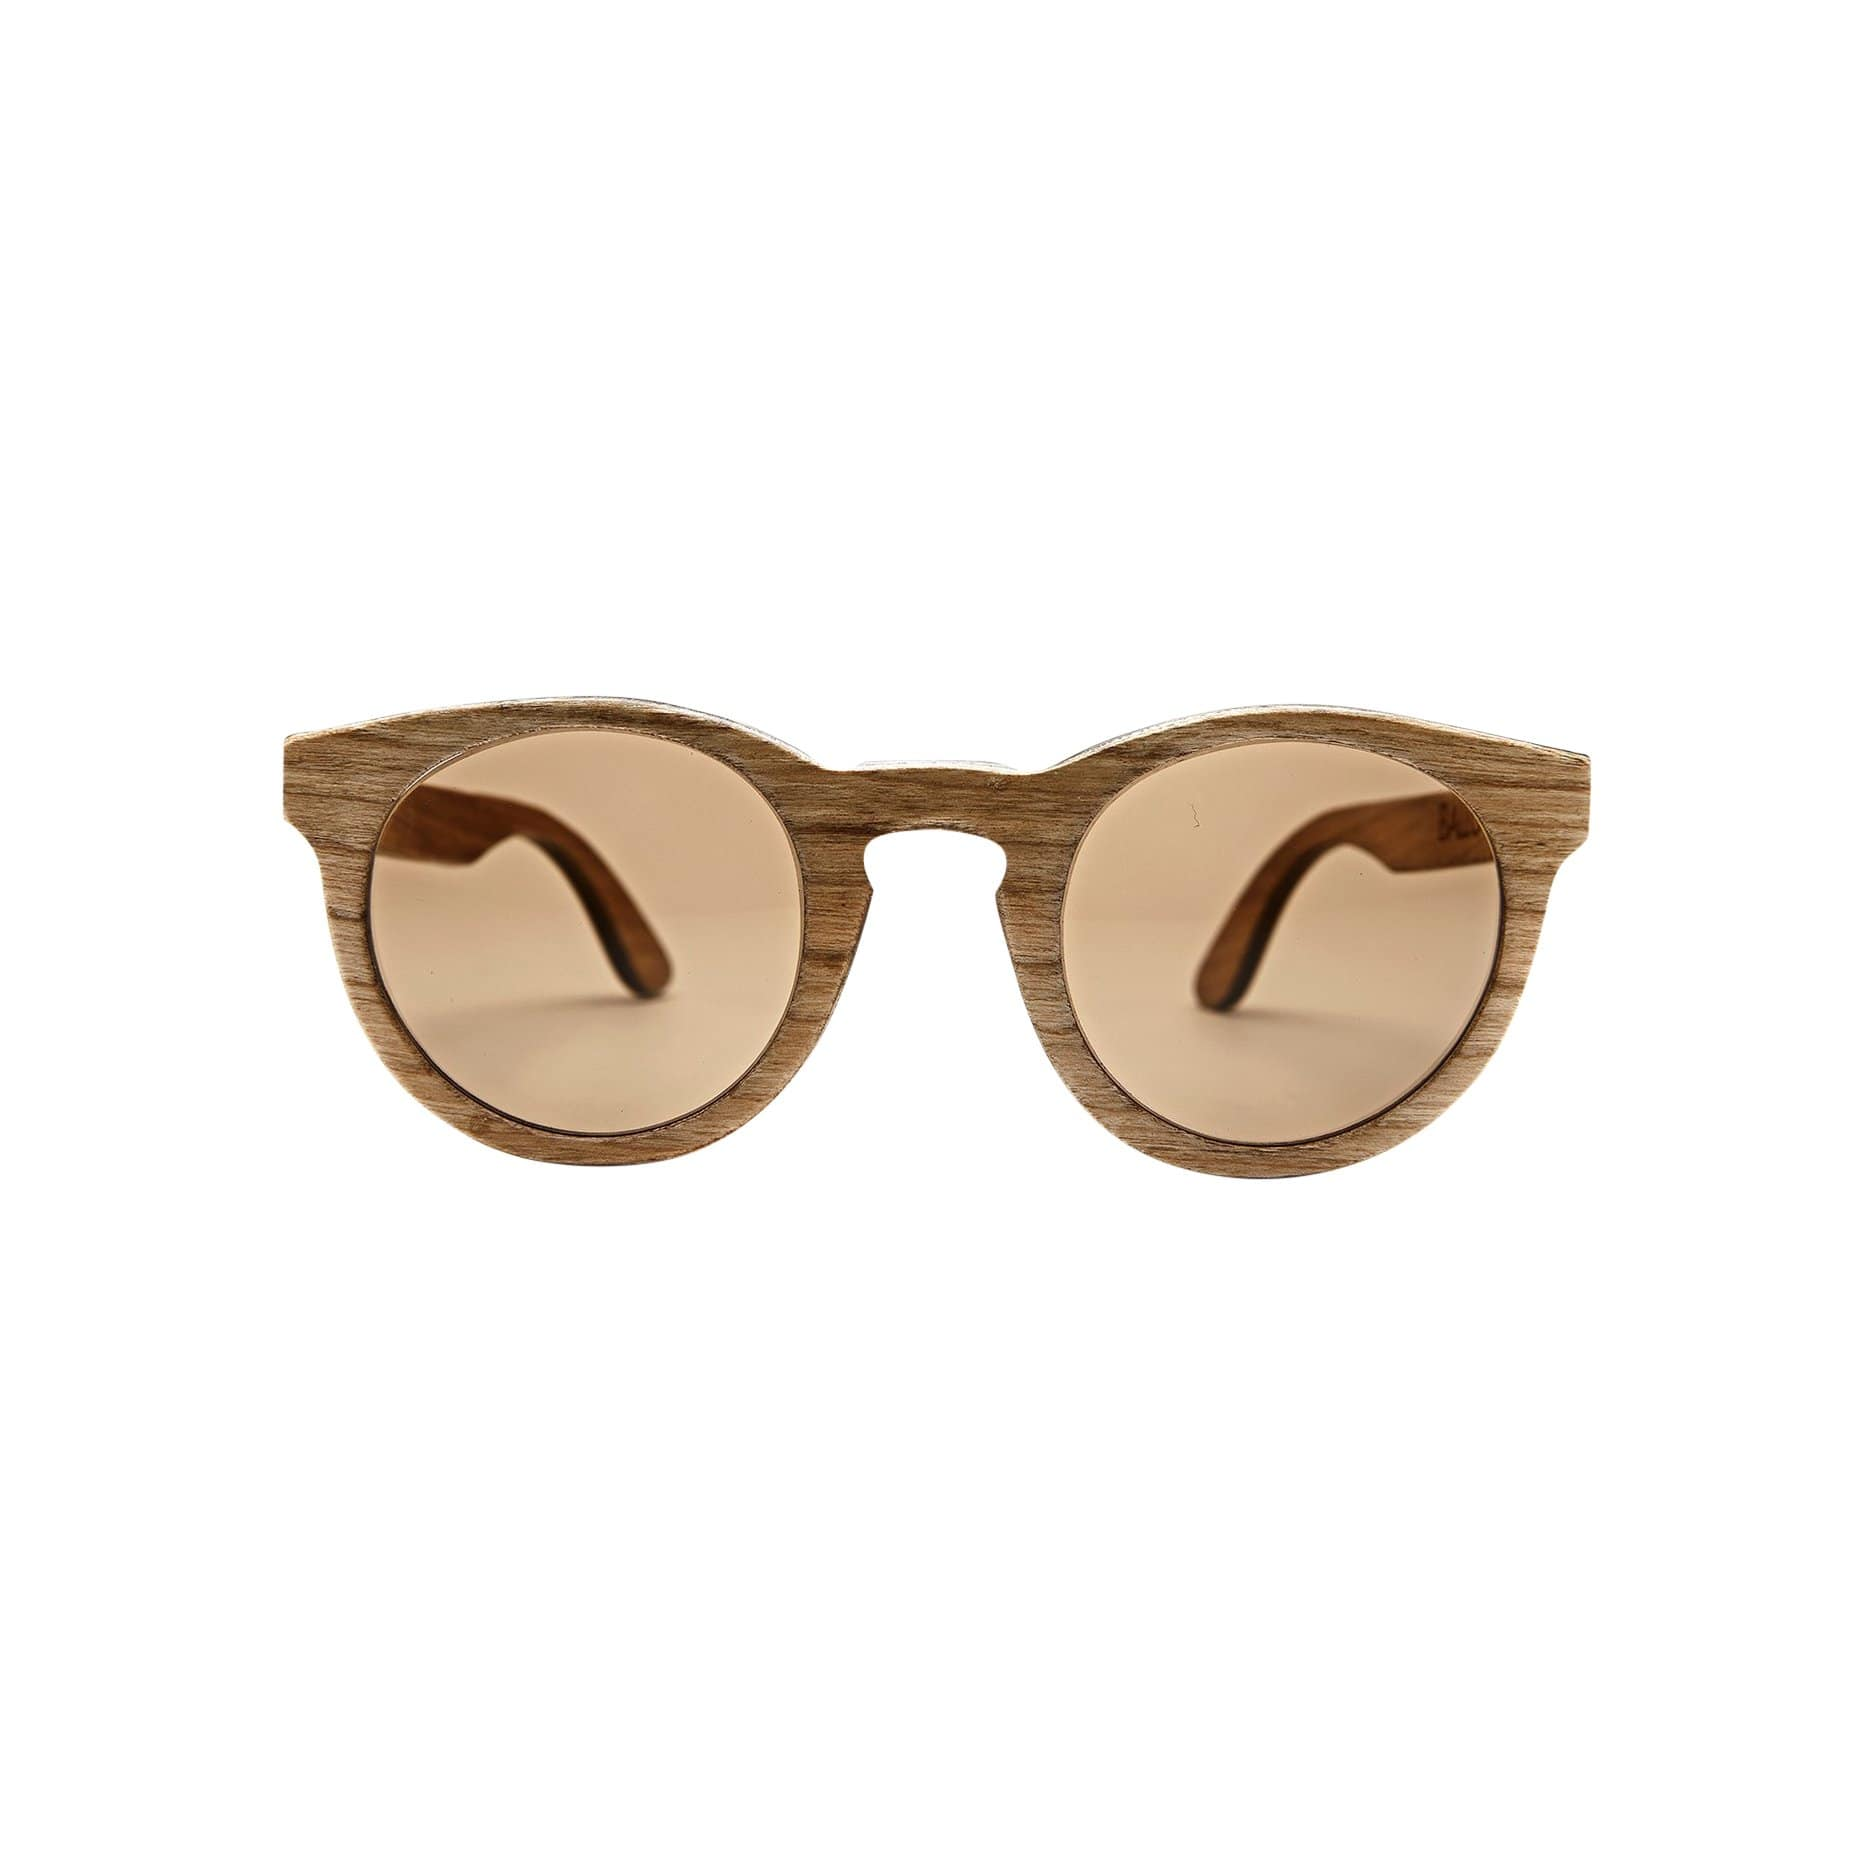 Ballo Sunglasses + Eyewear Owl with Cherry Wood